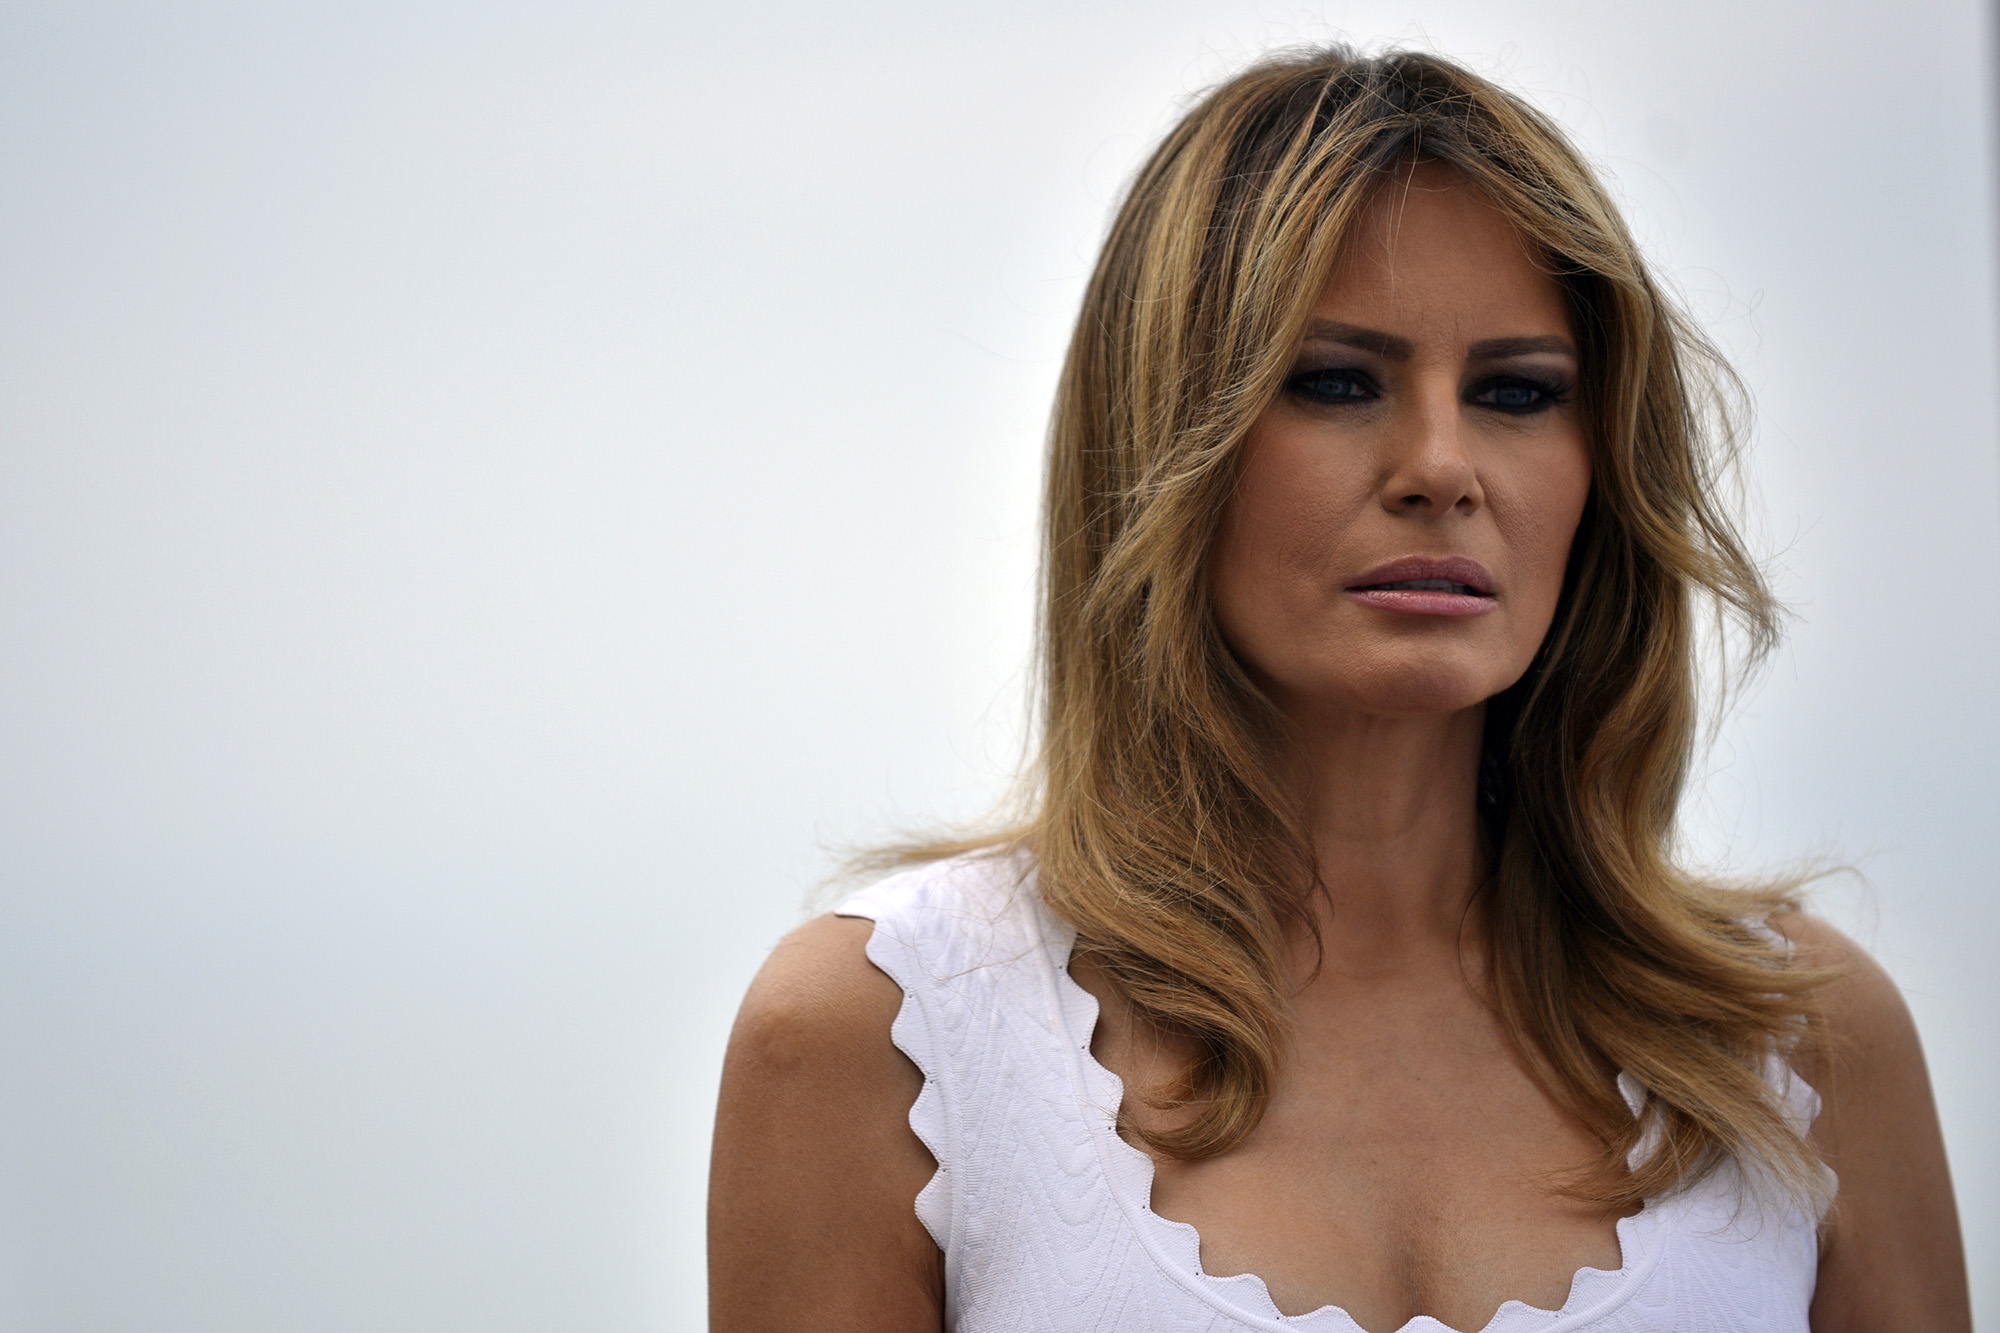 In praise of Melania Trump, the first lady often panned by media